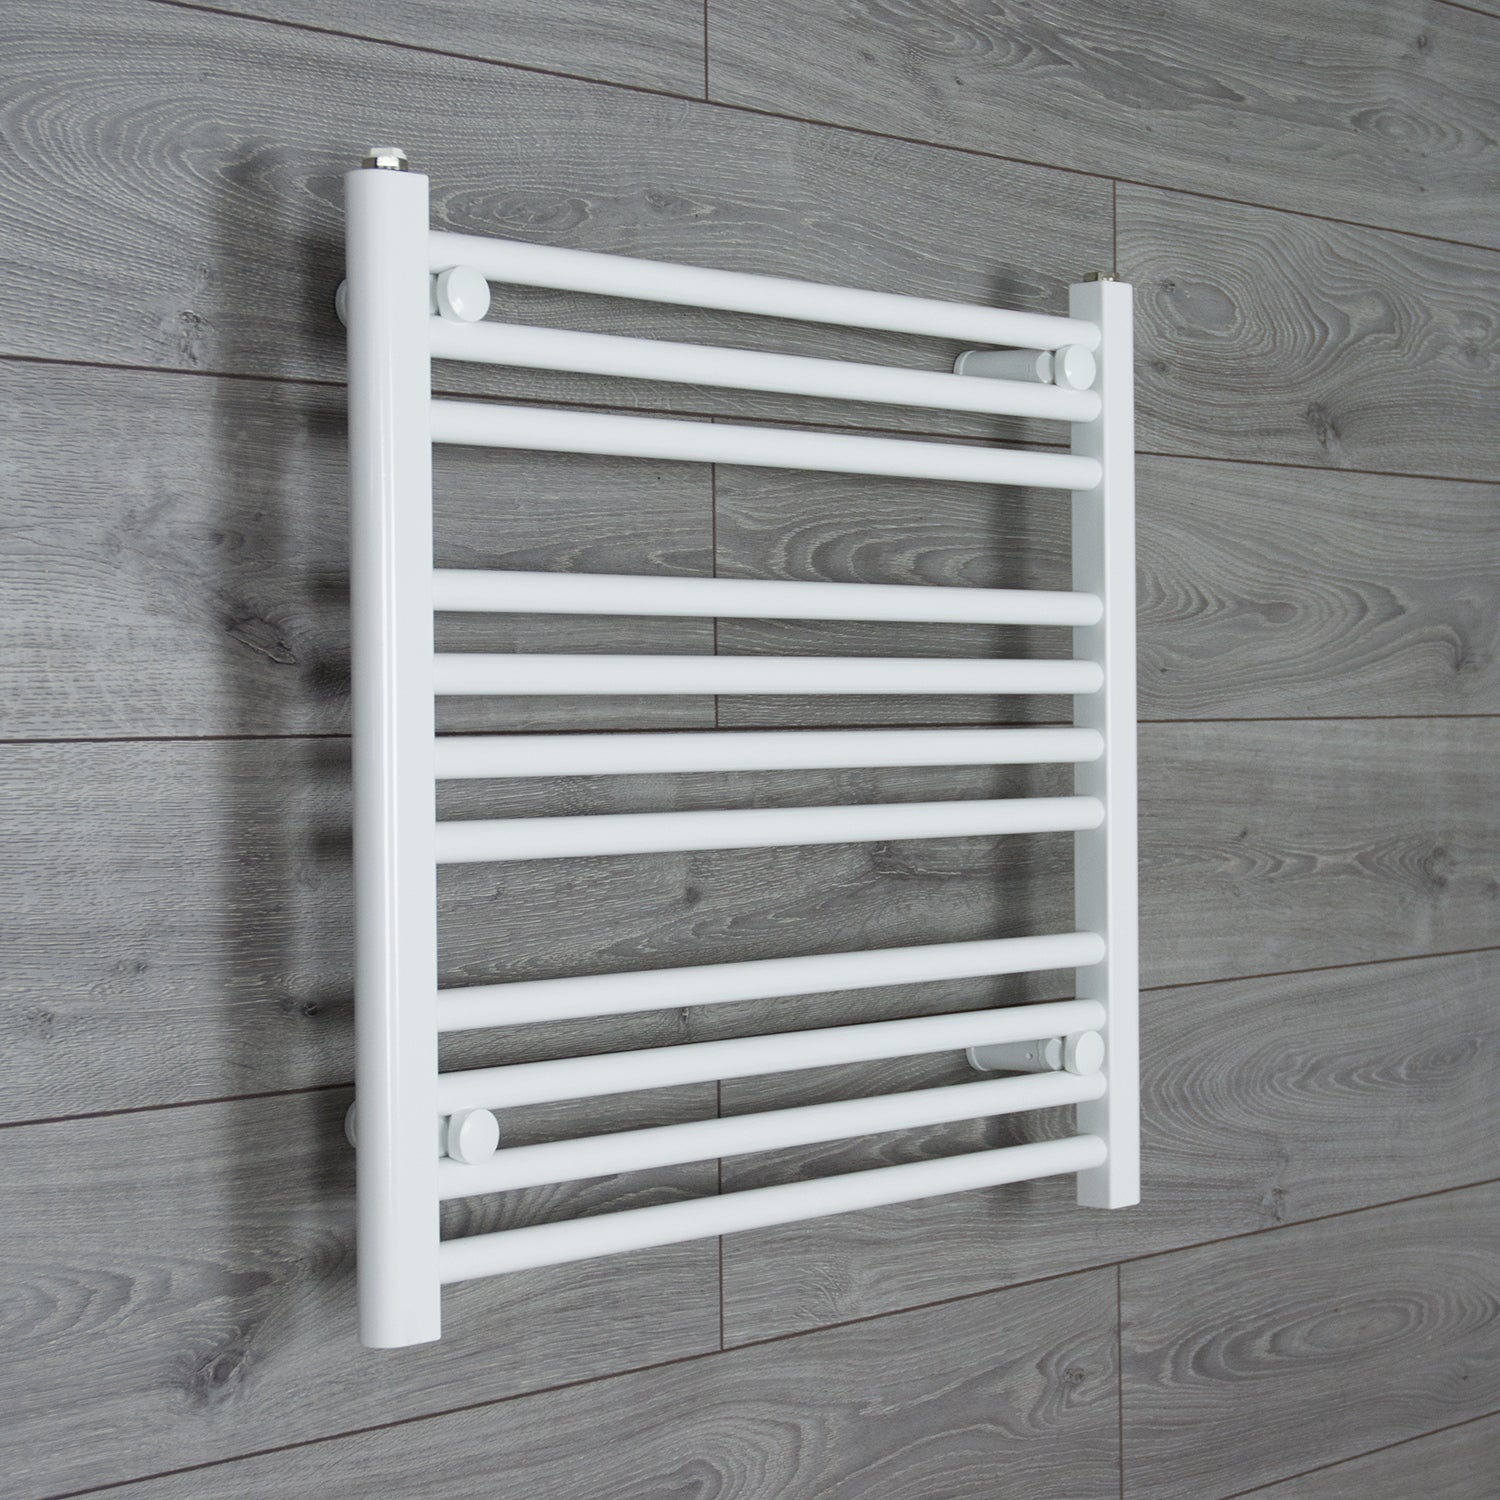 500mm Wide 600mm High Flat White Heated Towel Rail Radiator HTR,Towel Rail Only